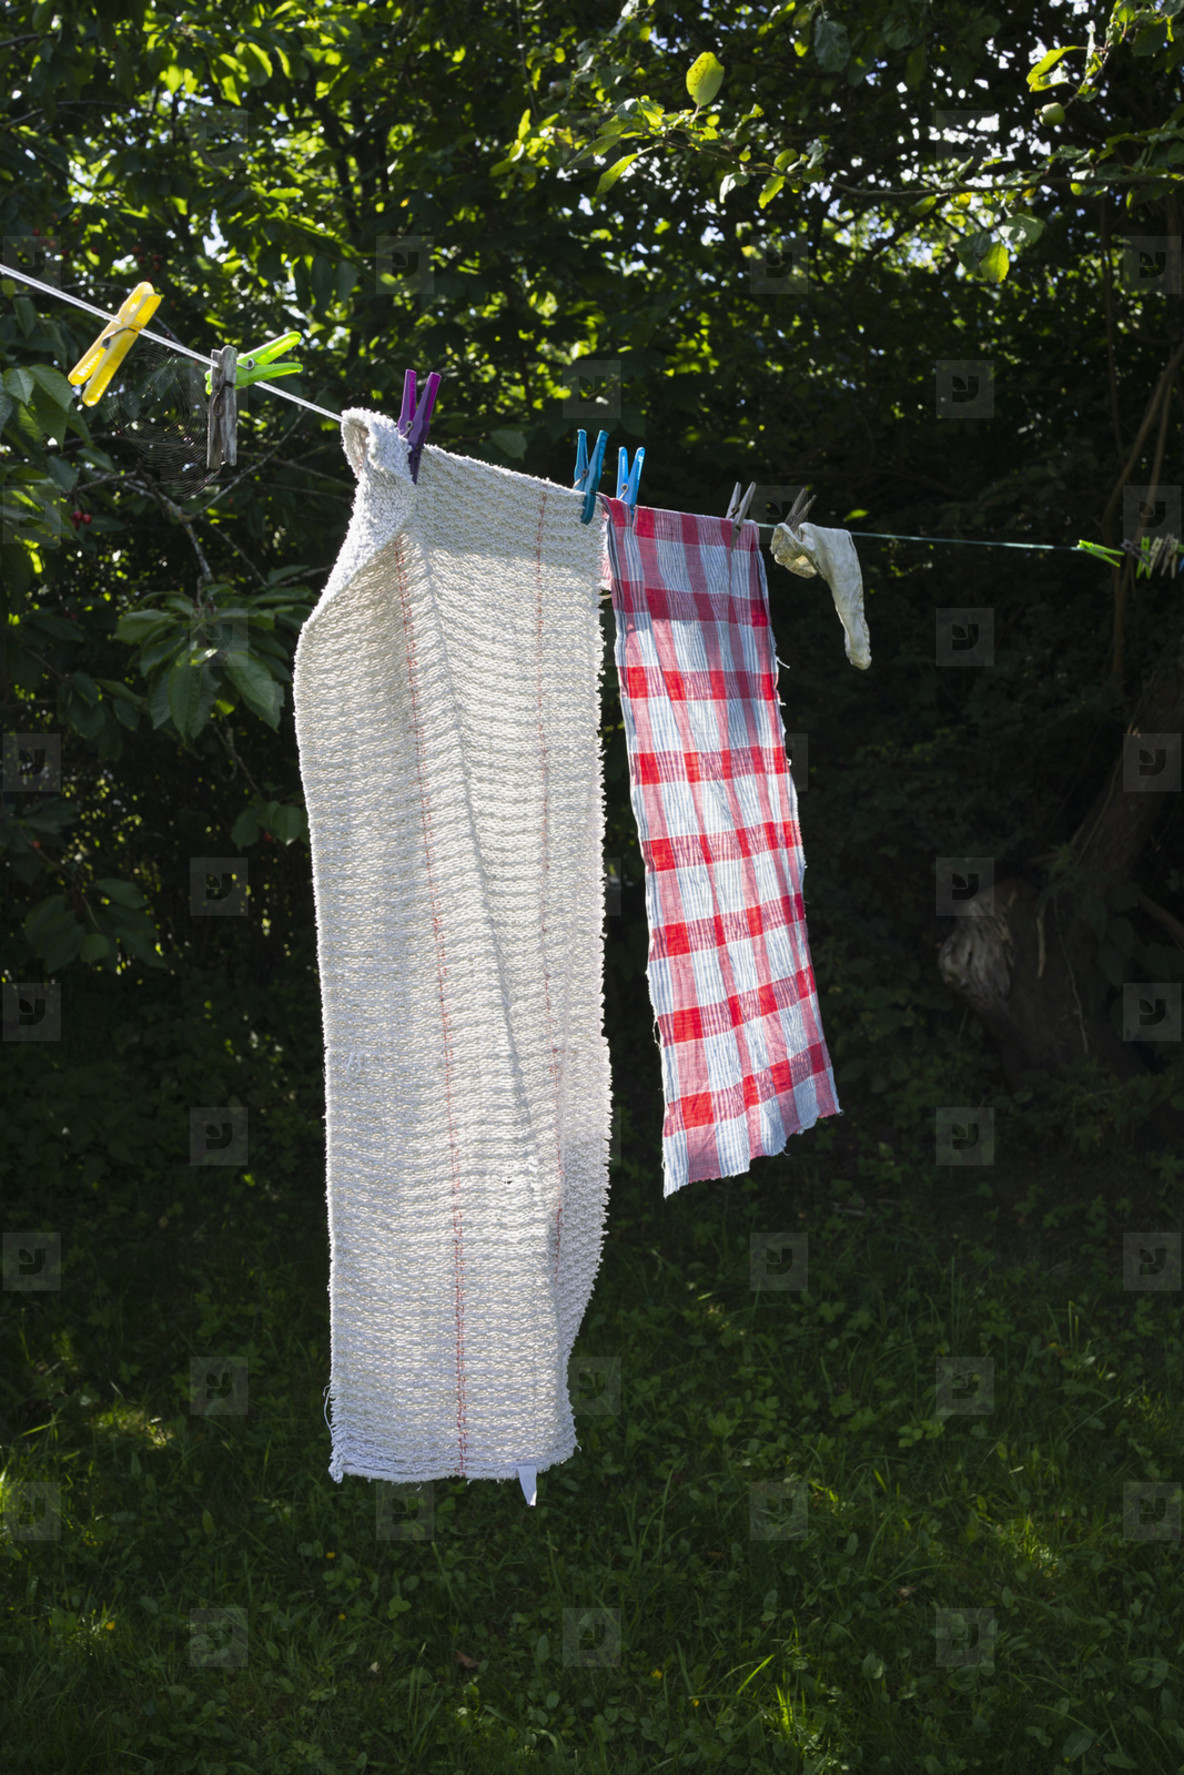 Towels drying on sunny clothesline in backyard